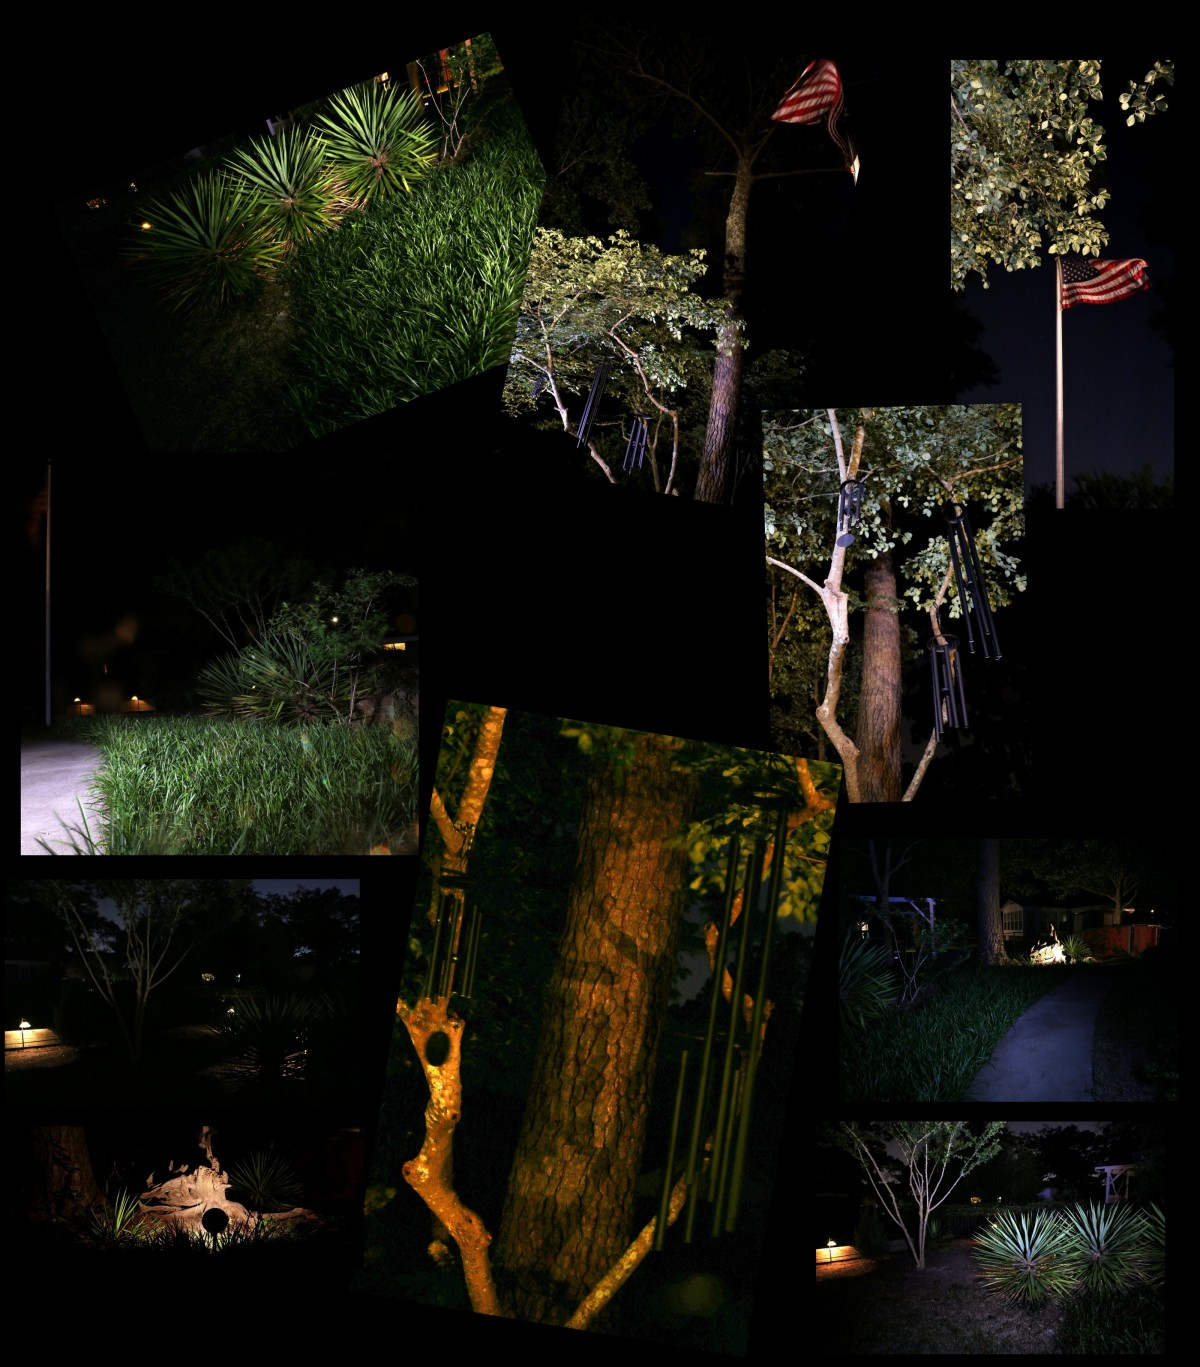 Photography ~ Night–Backyard Landscaping Collage,05/19